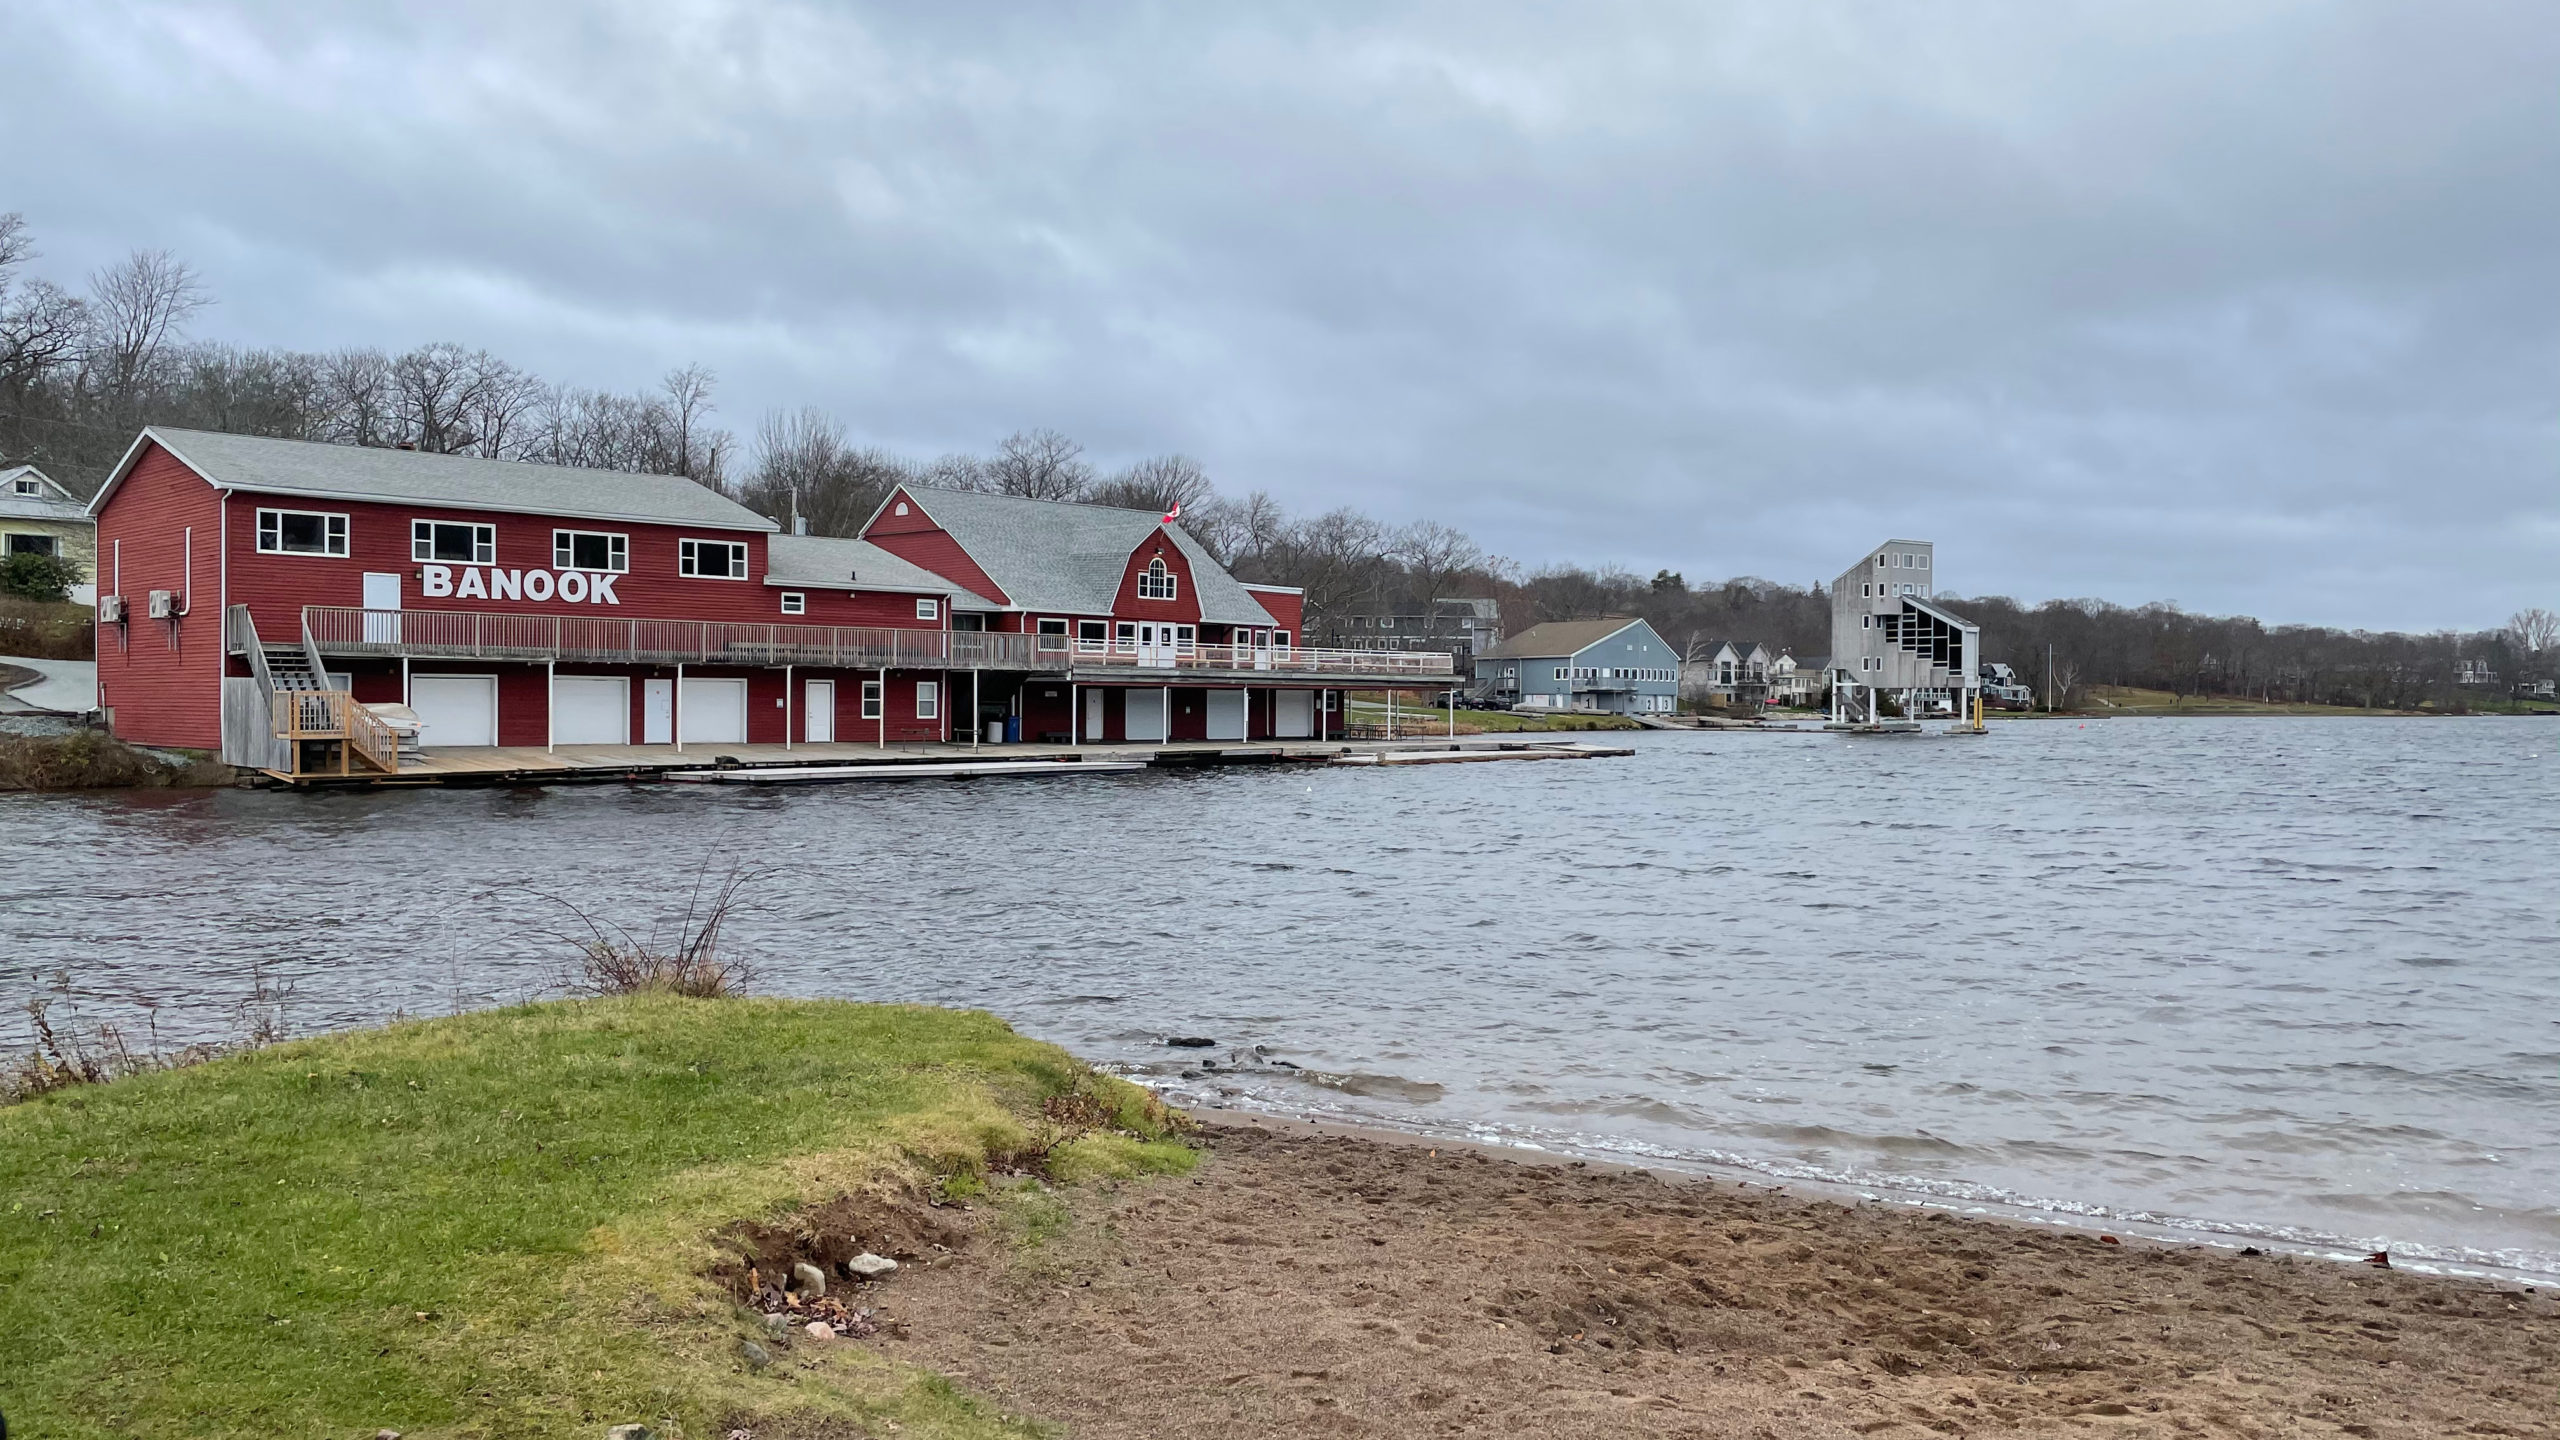 The historic Banook Canoe Club seen from Lion's Beach Park